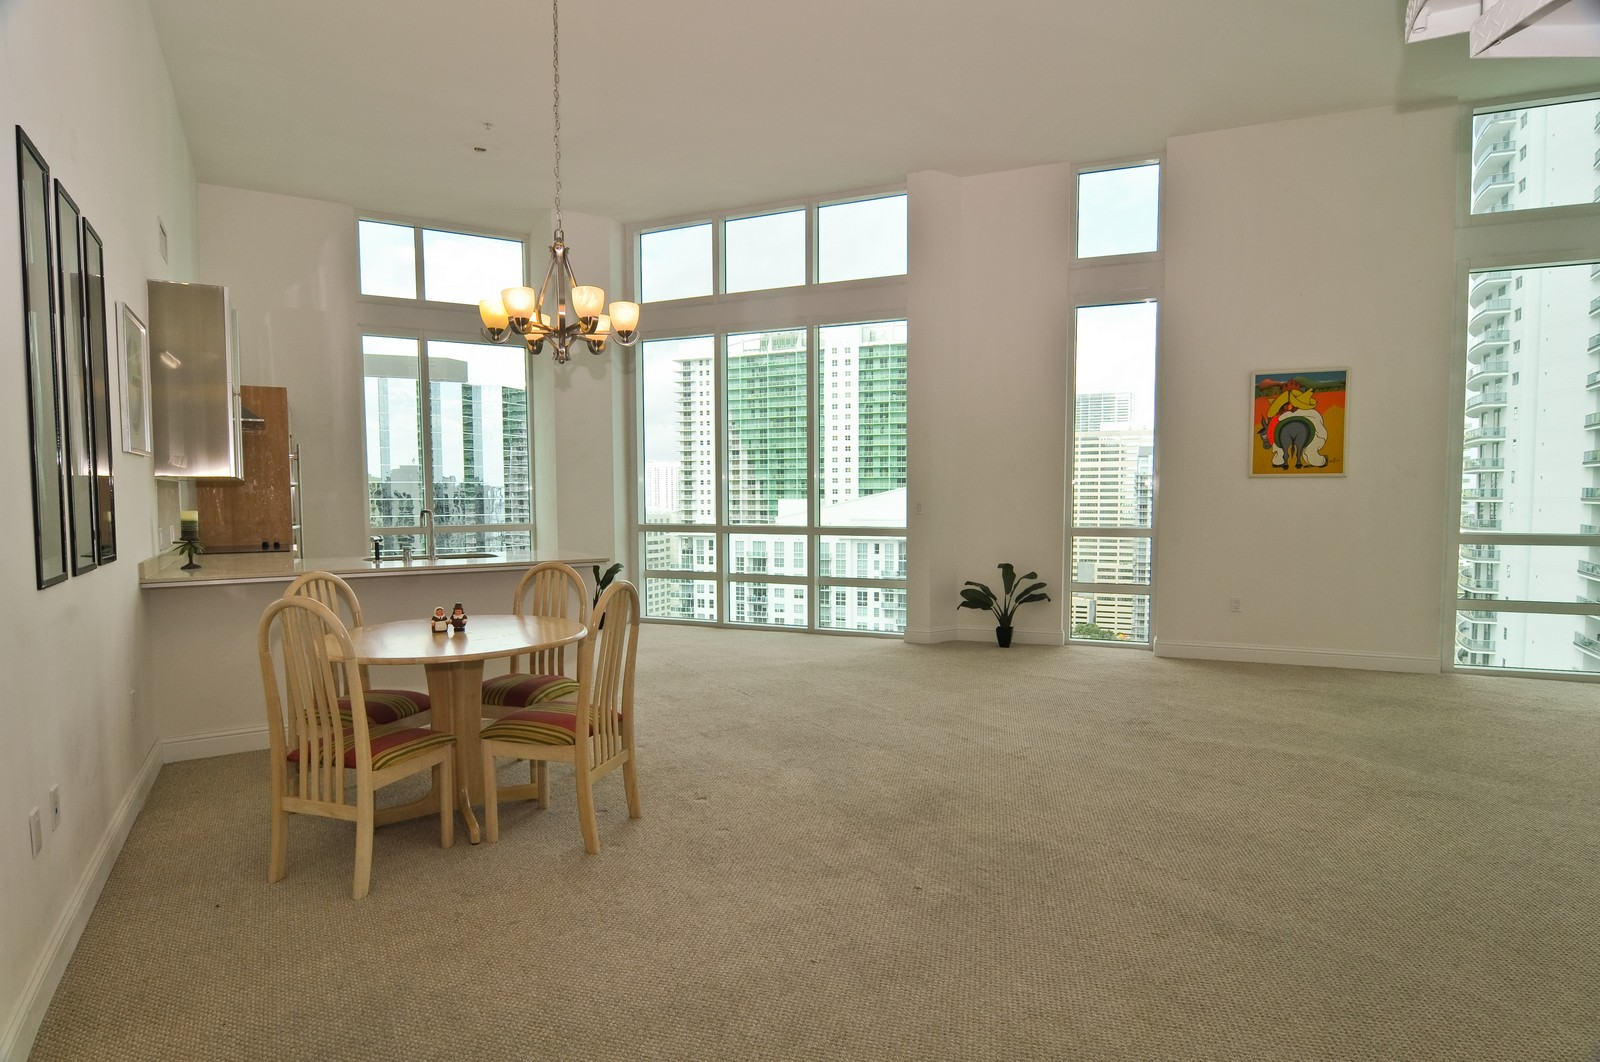 Real Estate Photography - 218 SE 14th St, PH 2, Miami, FL, 33131 - Kitchen / Dining Room